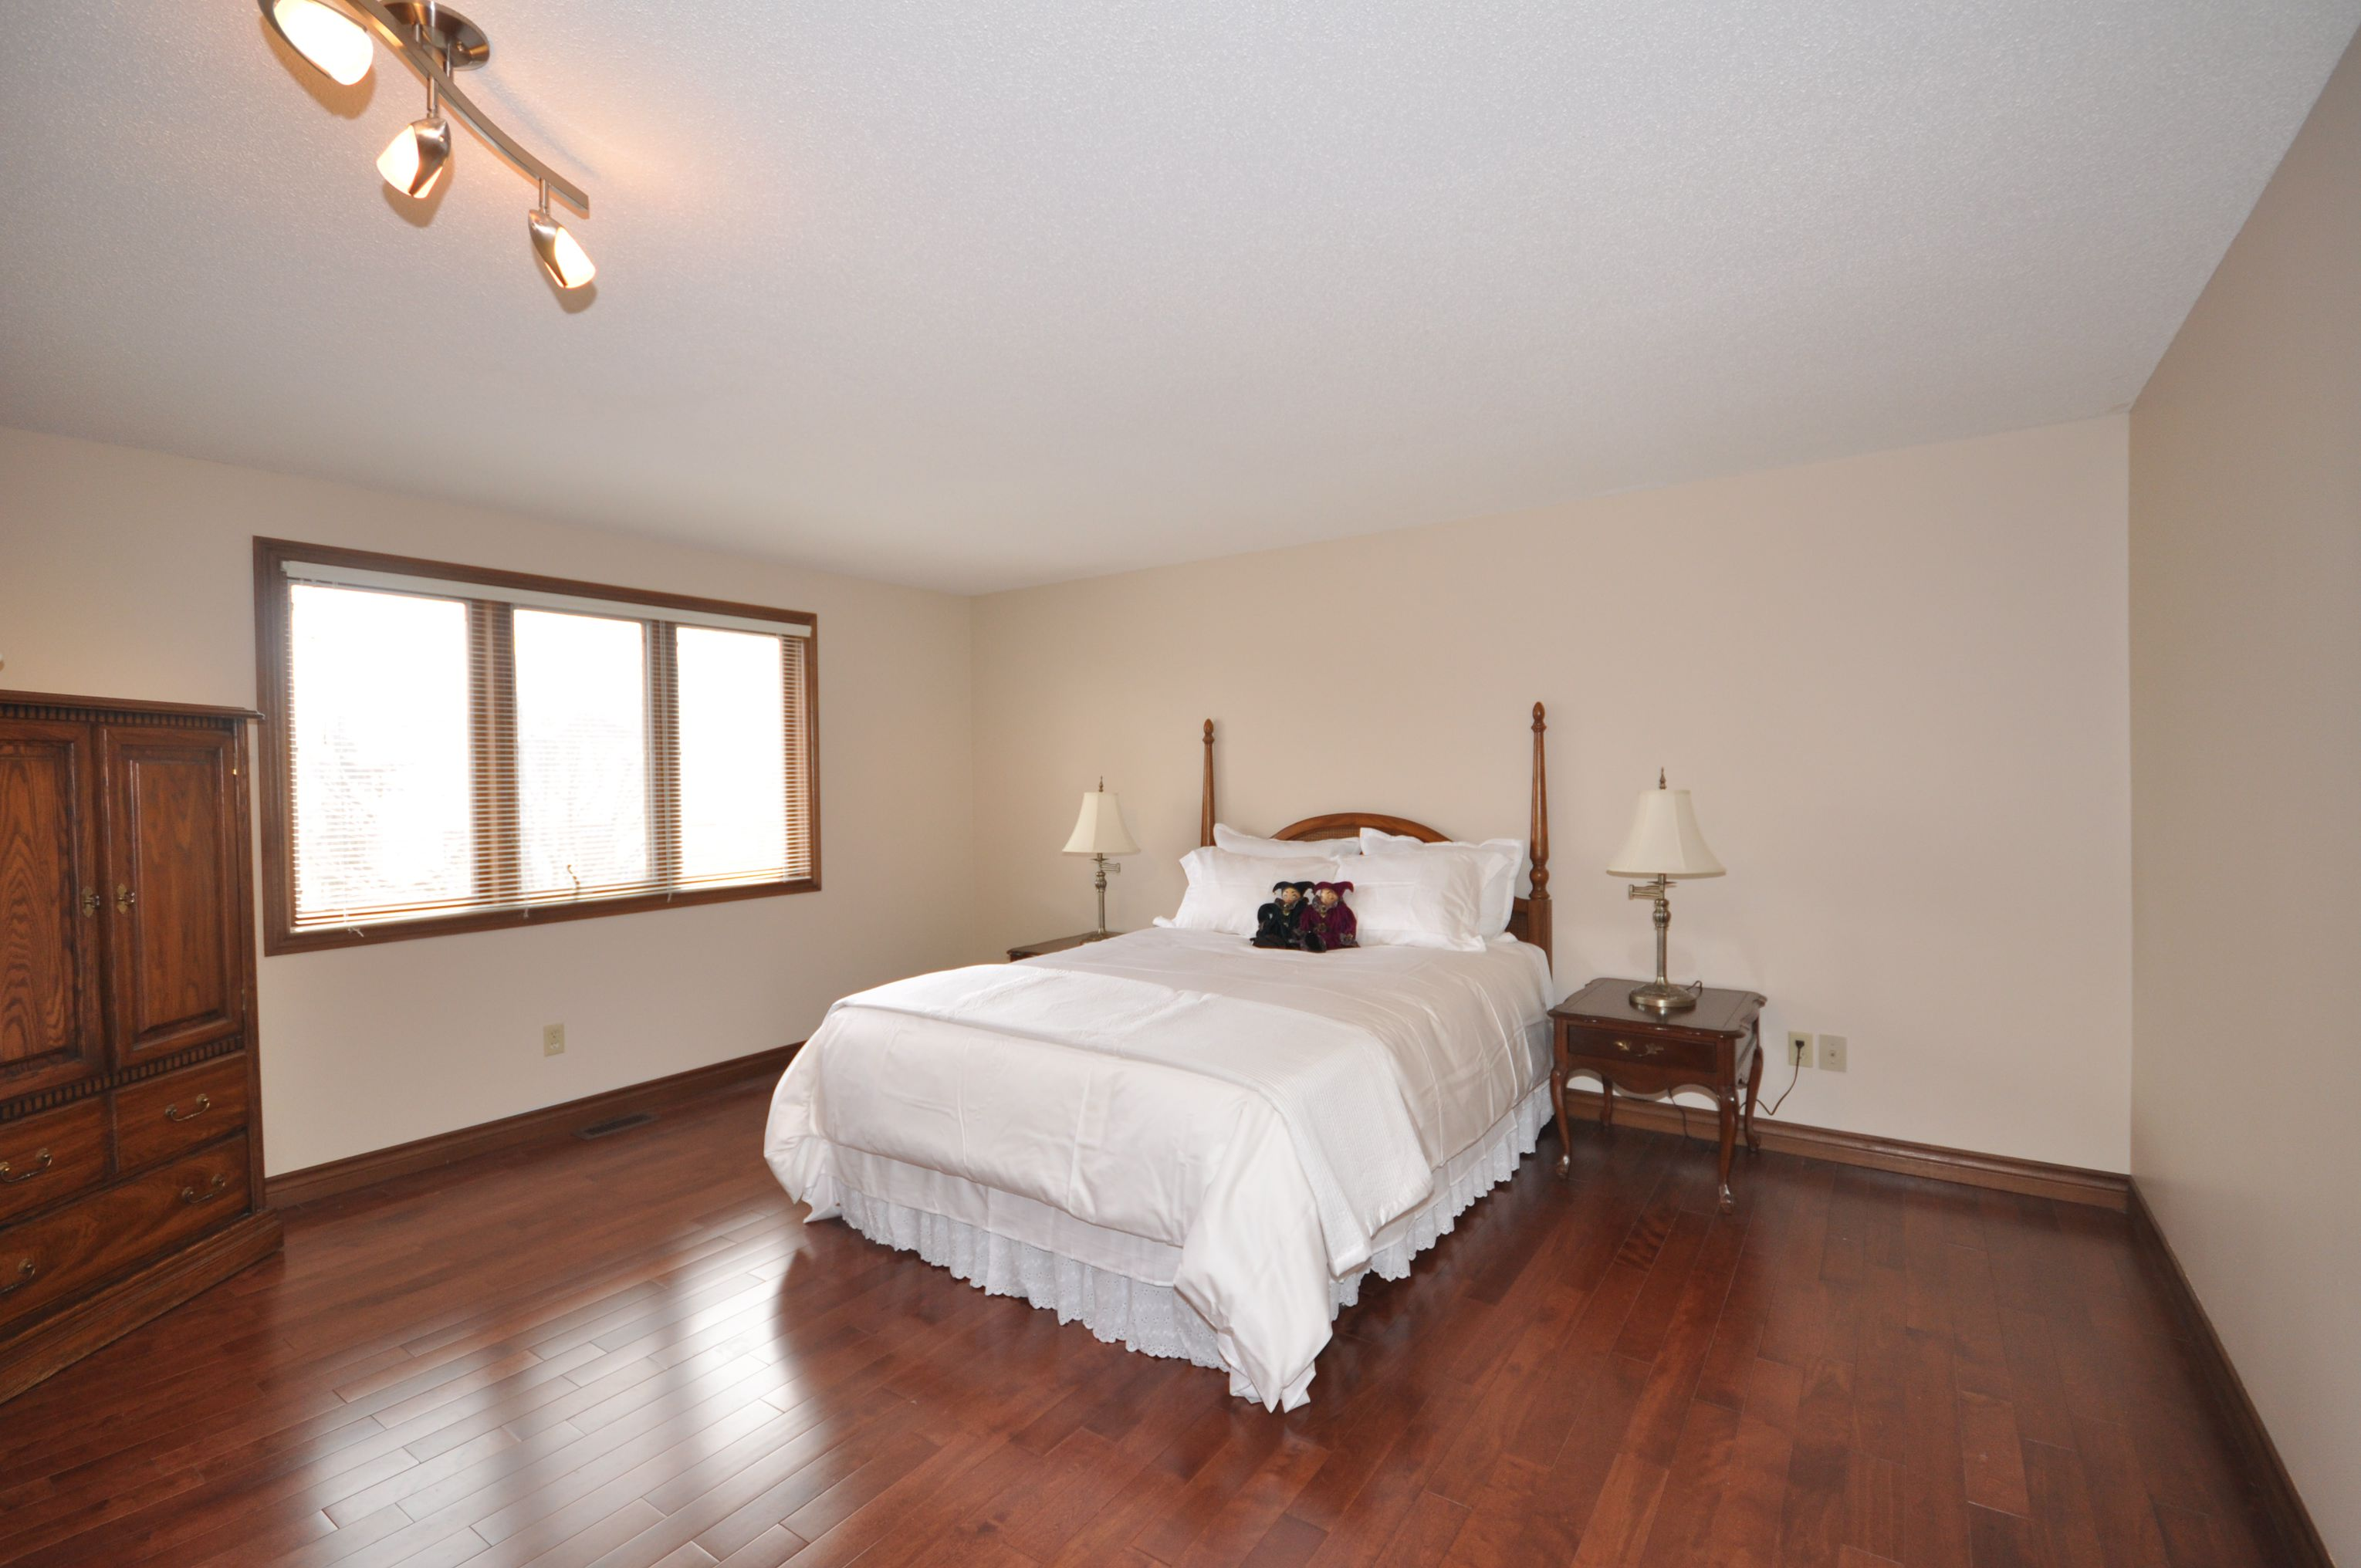 4 nice sized Bedrooms all with hardwood floors